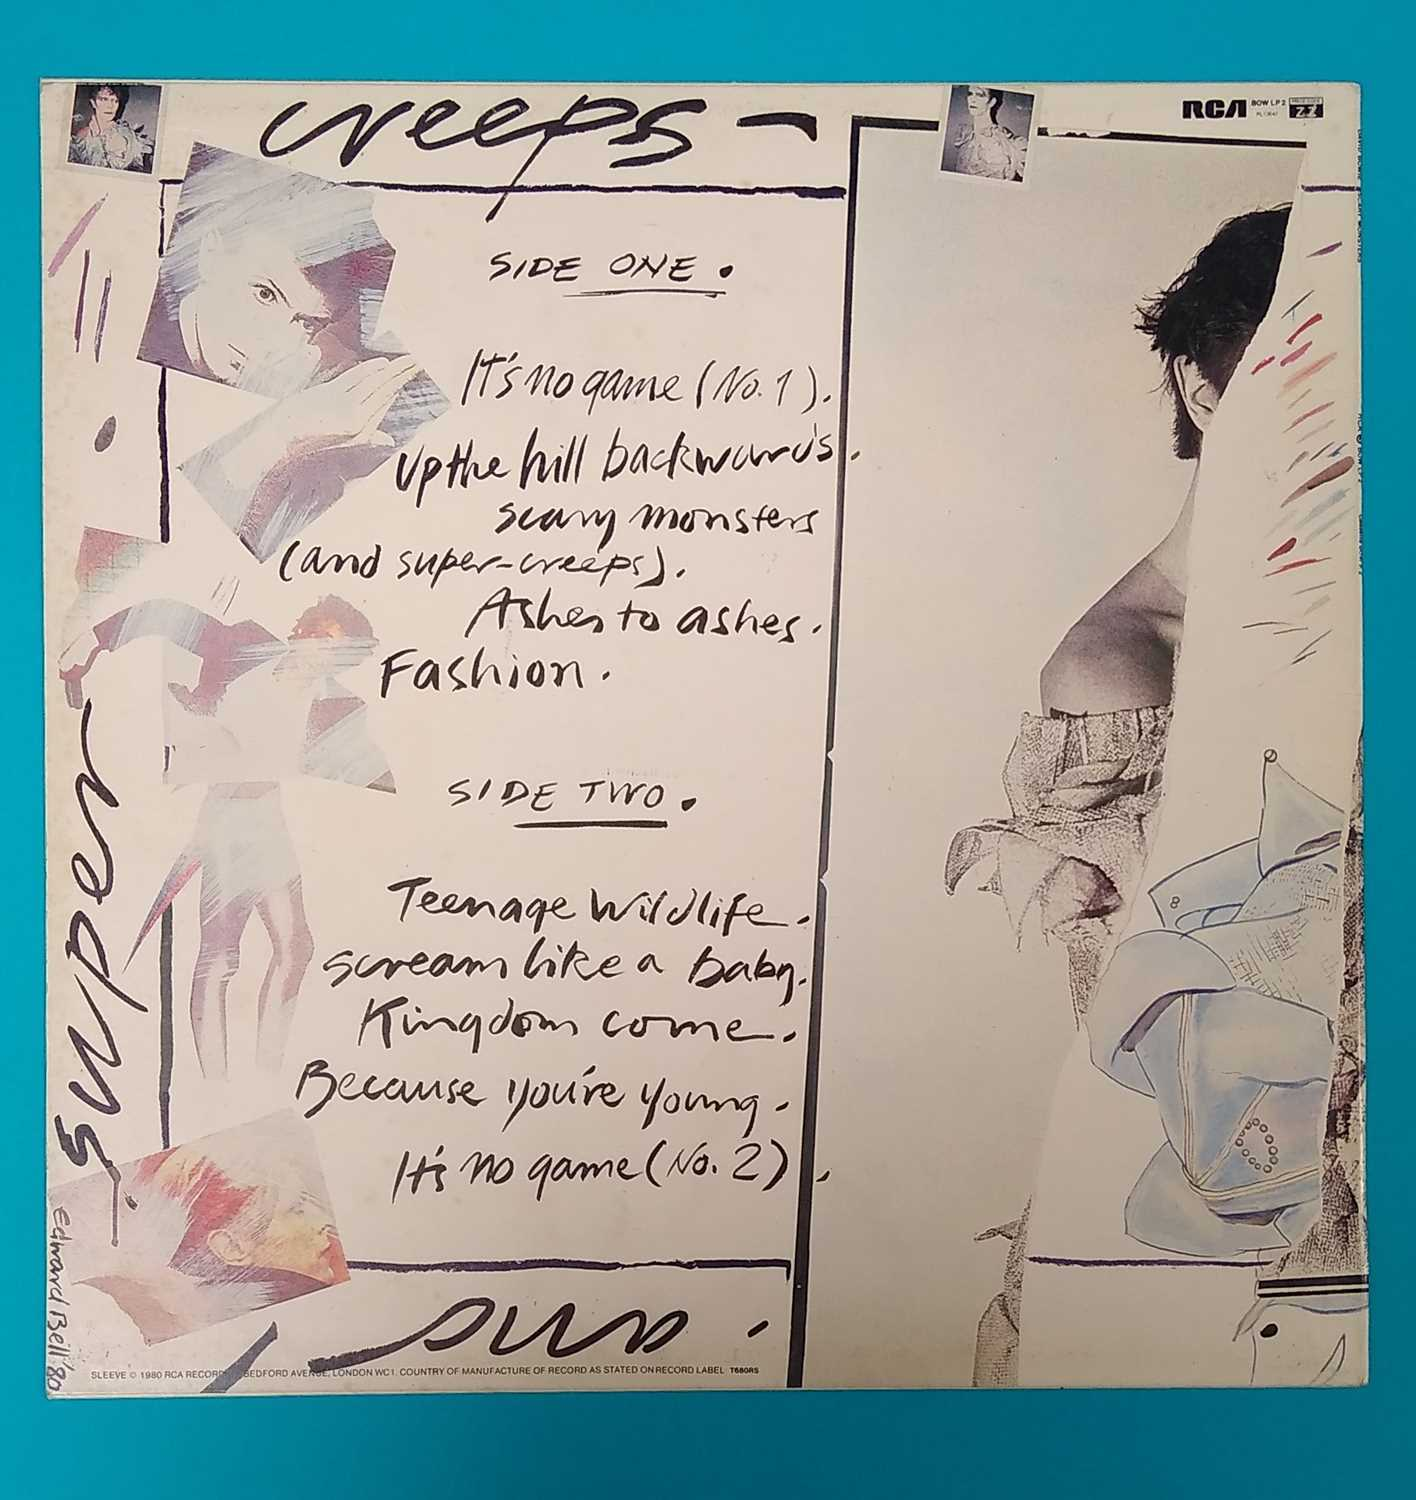 Edward Bell (British Contemporary) Signed Album Sleeves - Image 4 of 10